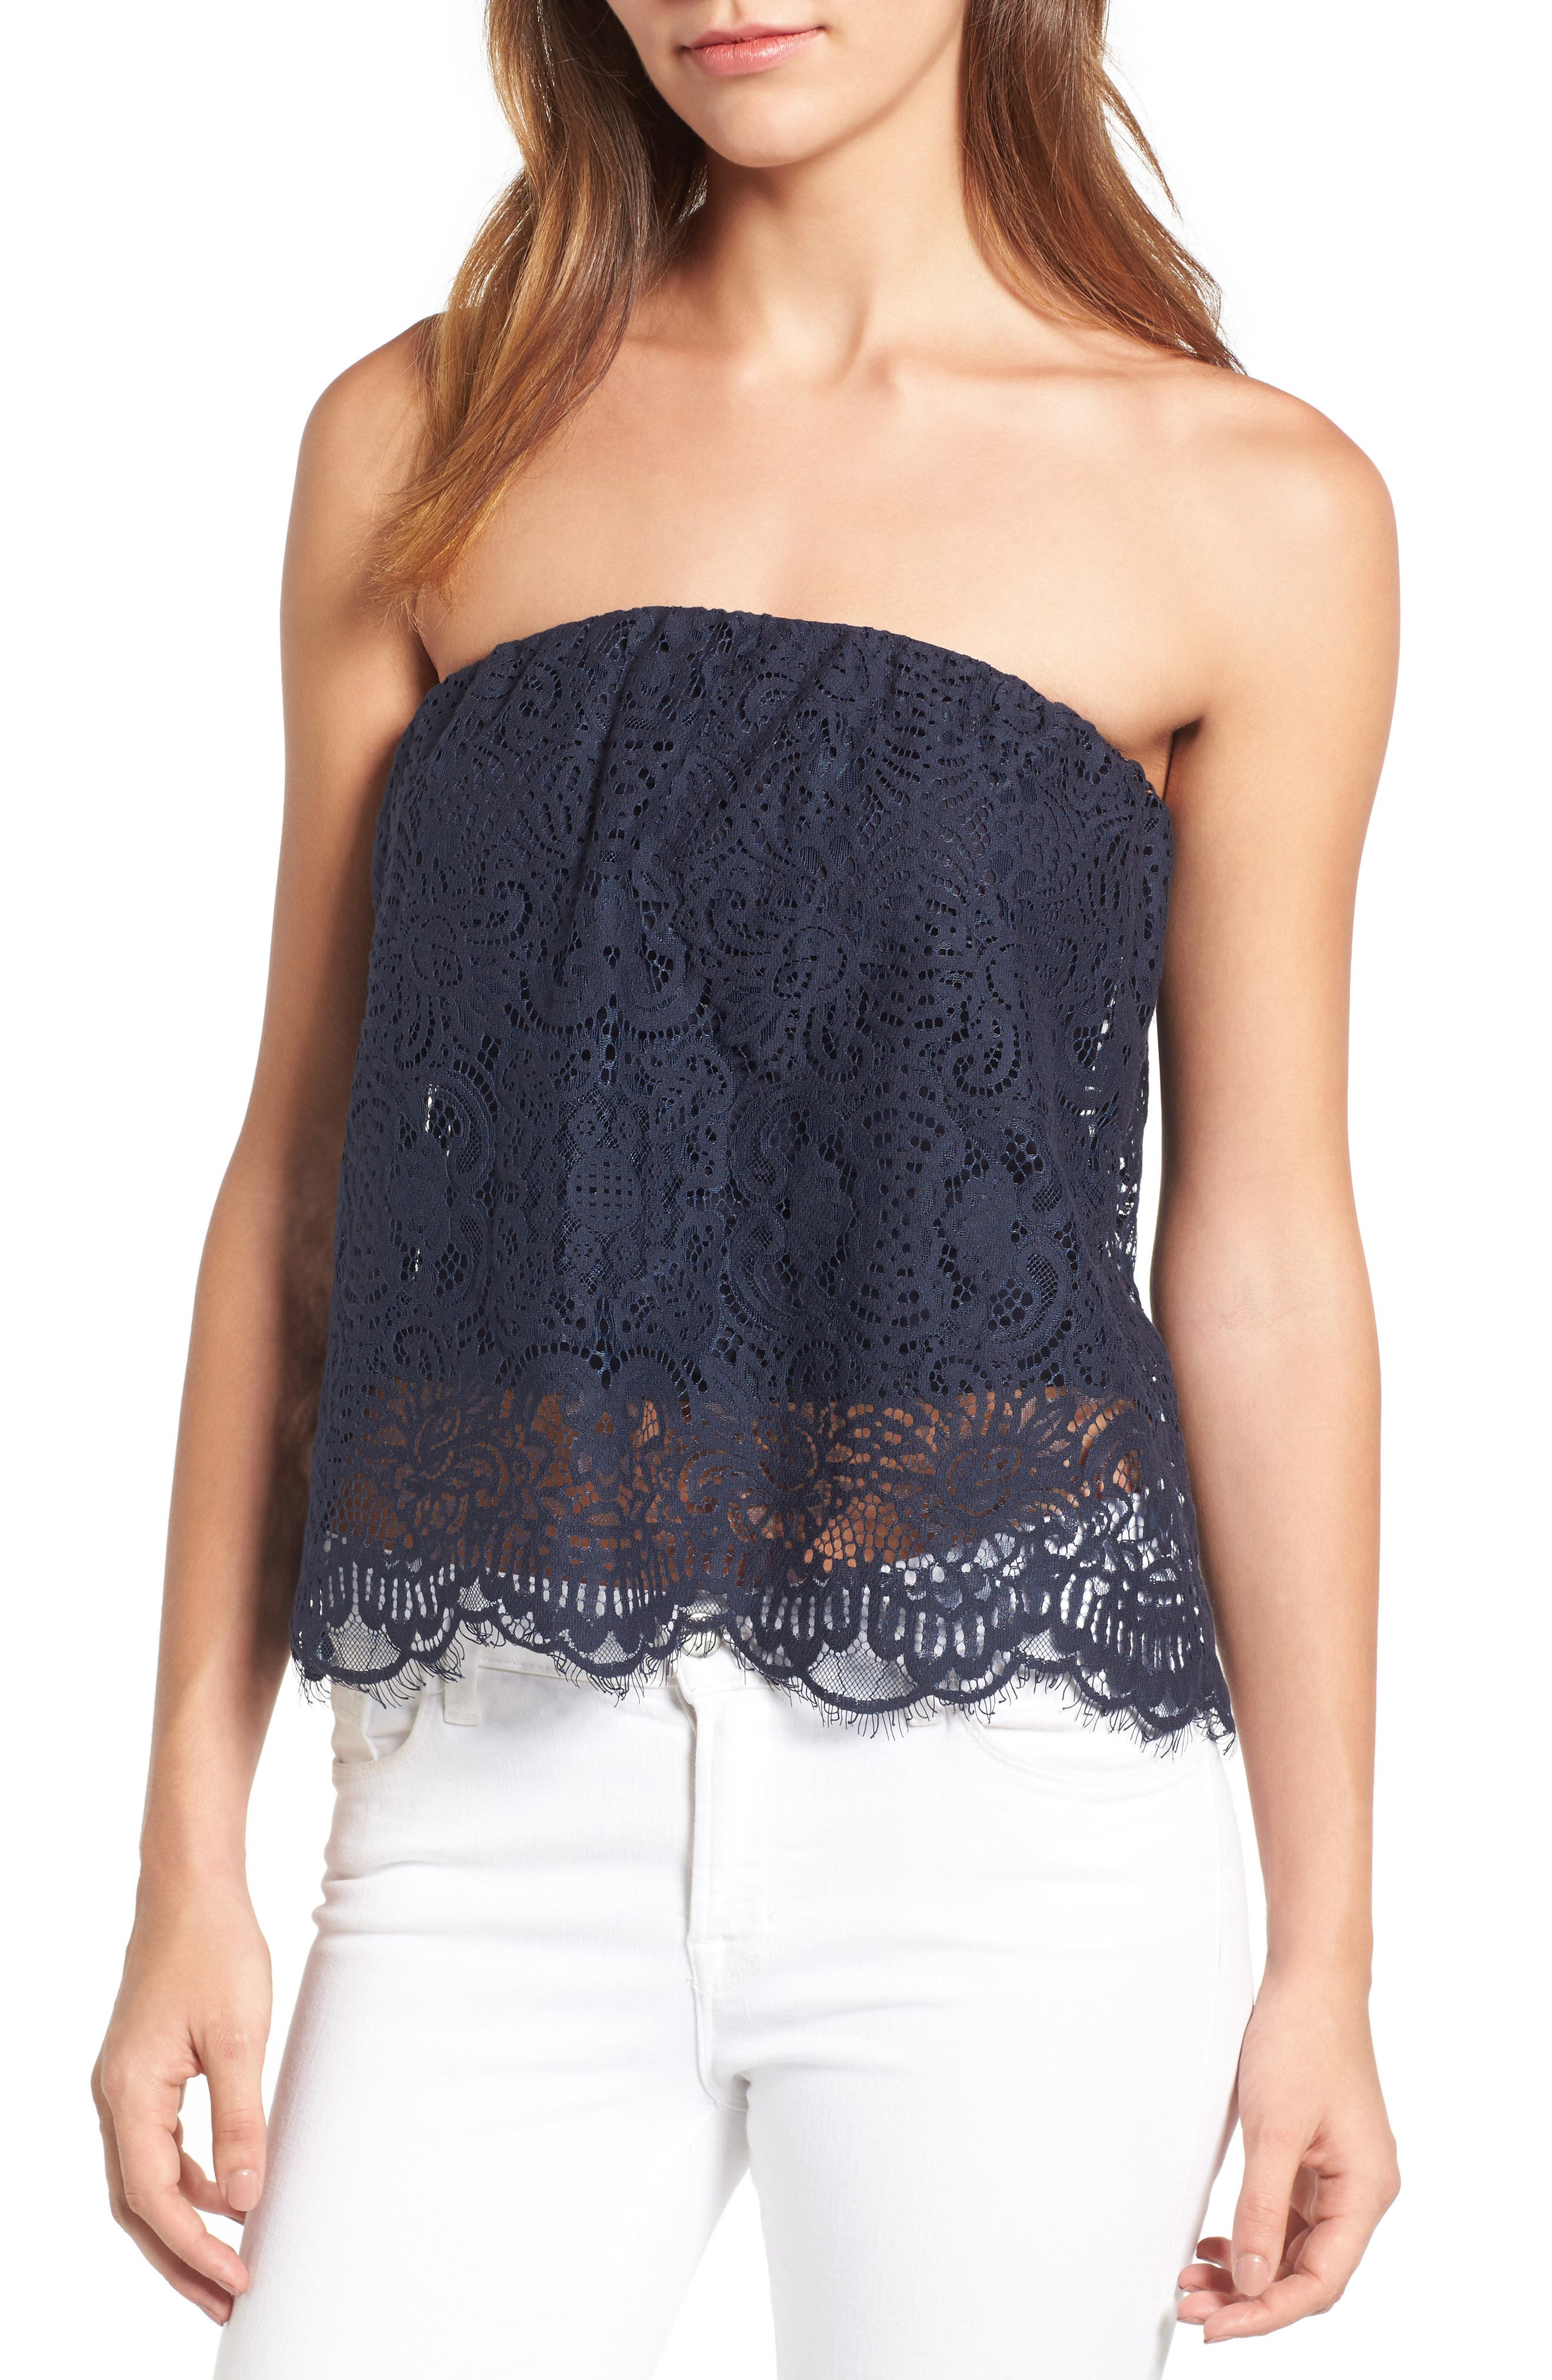 Alternate Image 1 Selected - Chelsea28 Strapless Lace Top